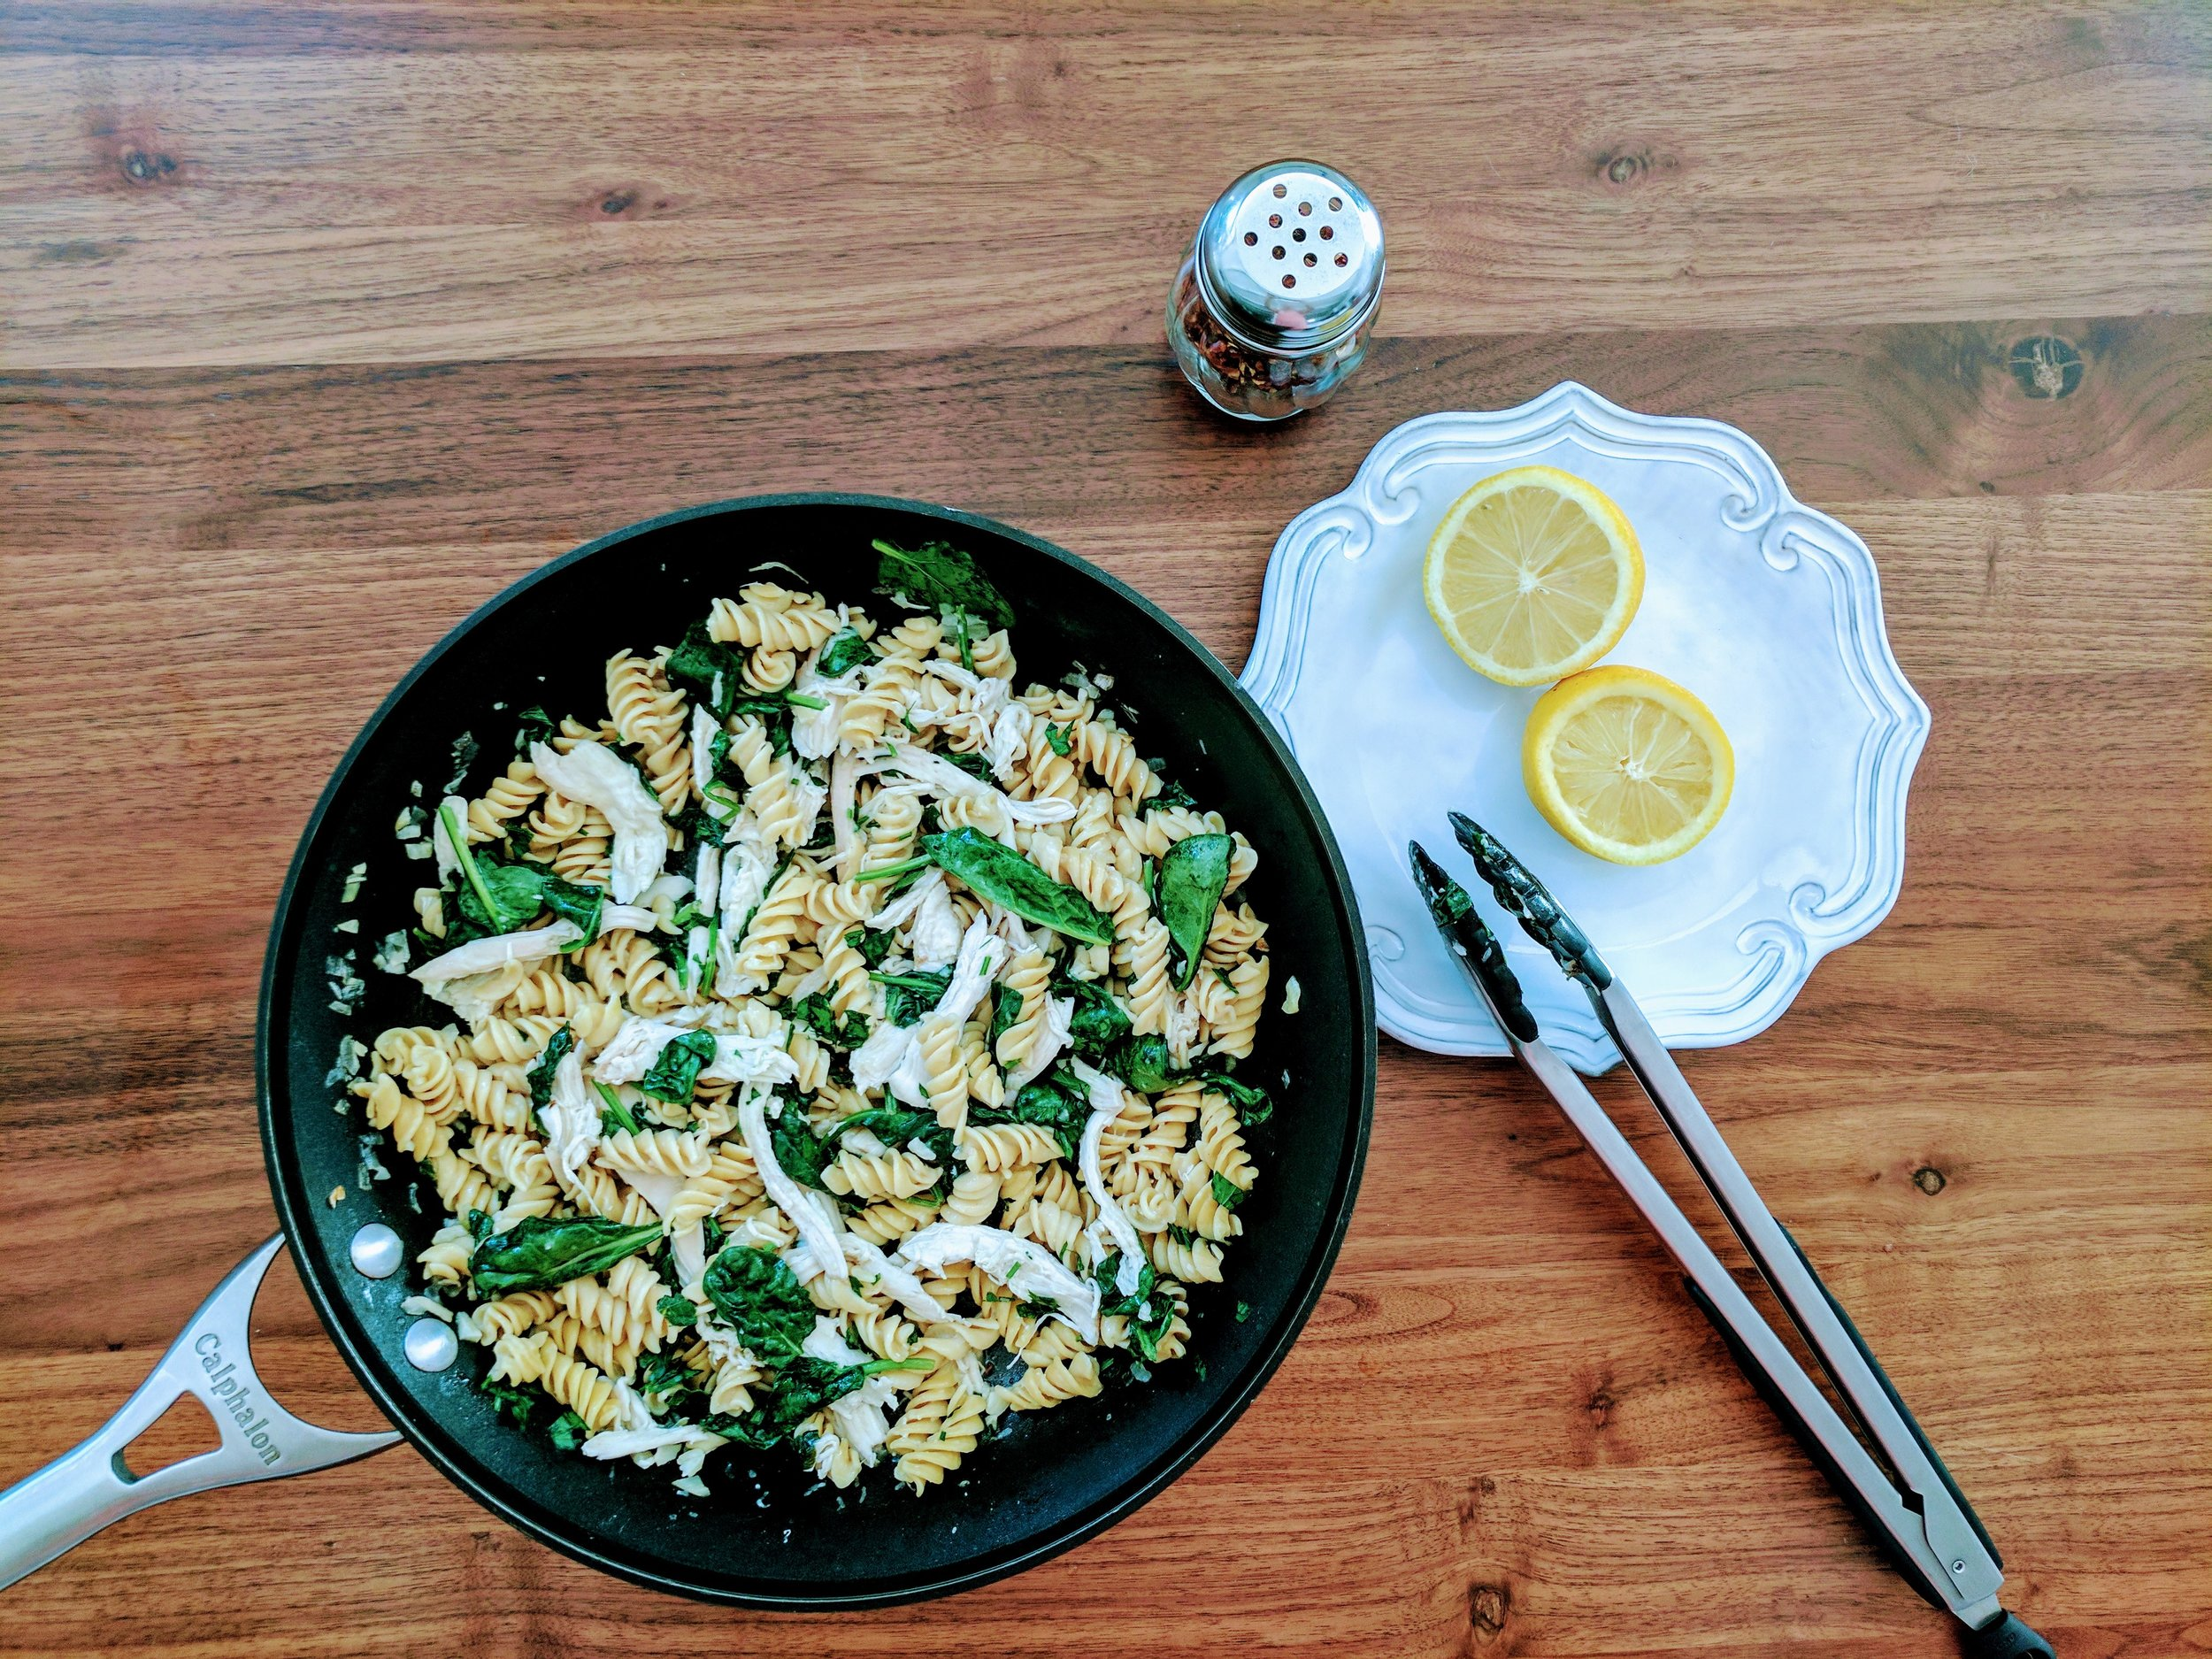 Rotini pasta, spinach, shallots, and rotisserie chicken (no tomatoes)